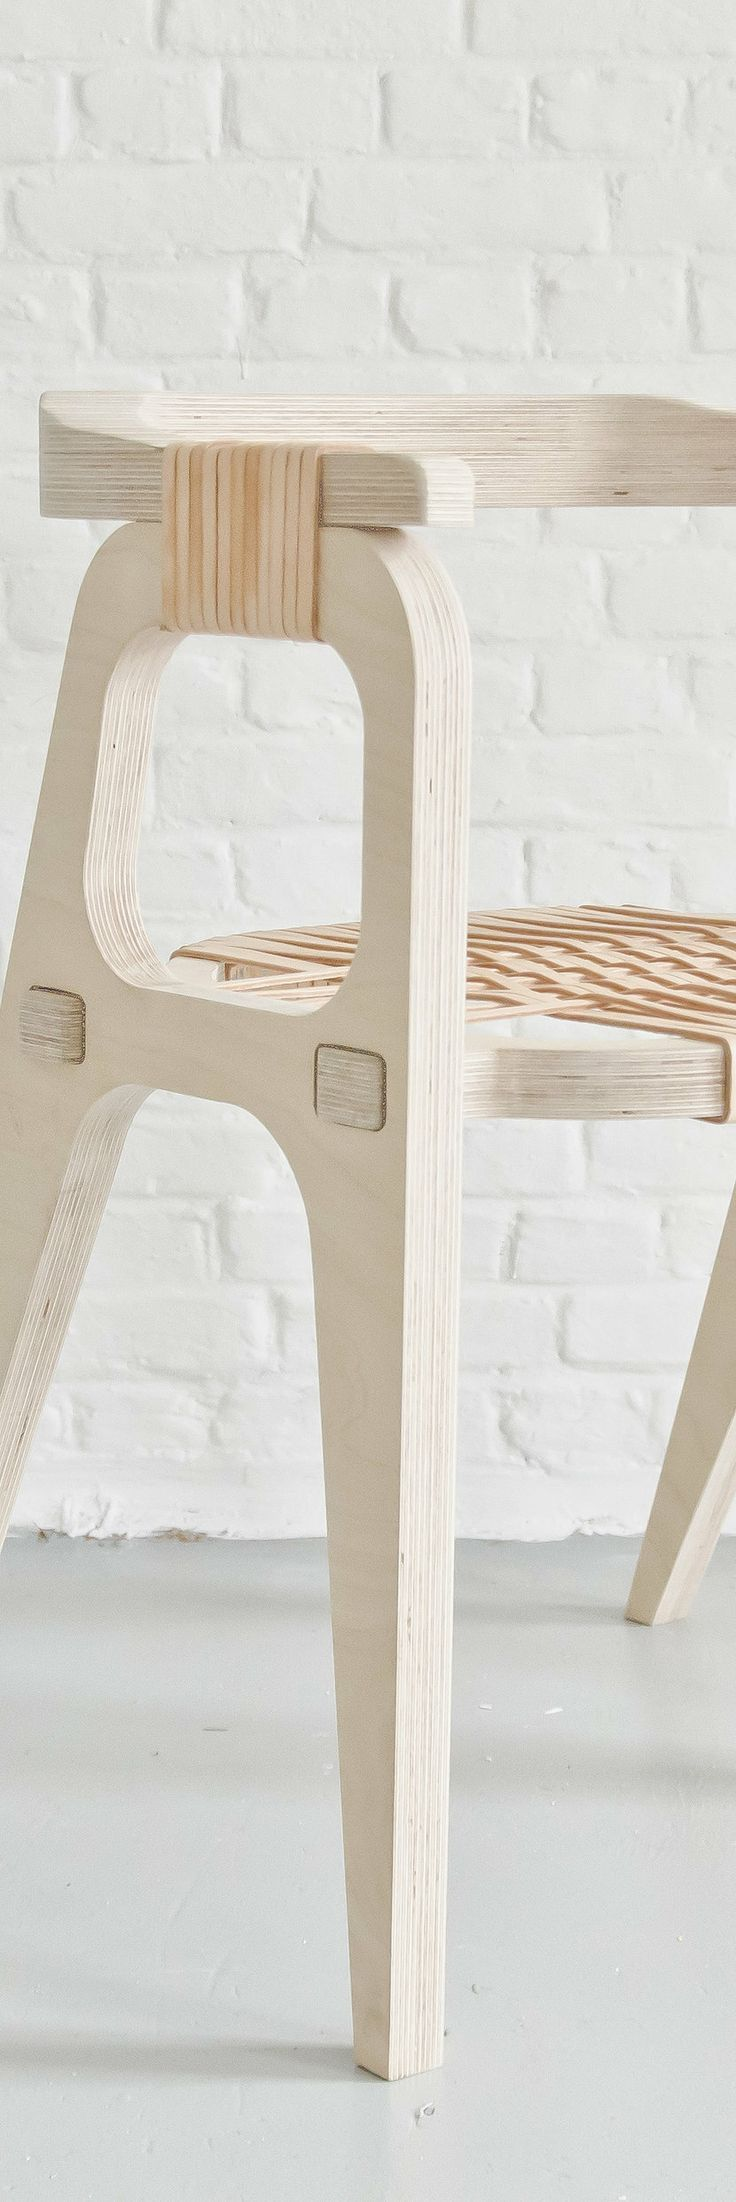 bind chair by jessy vandurme made by birch plywood and leather strings use glue stick the leather strings with the chair seat back edge to make it more